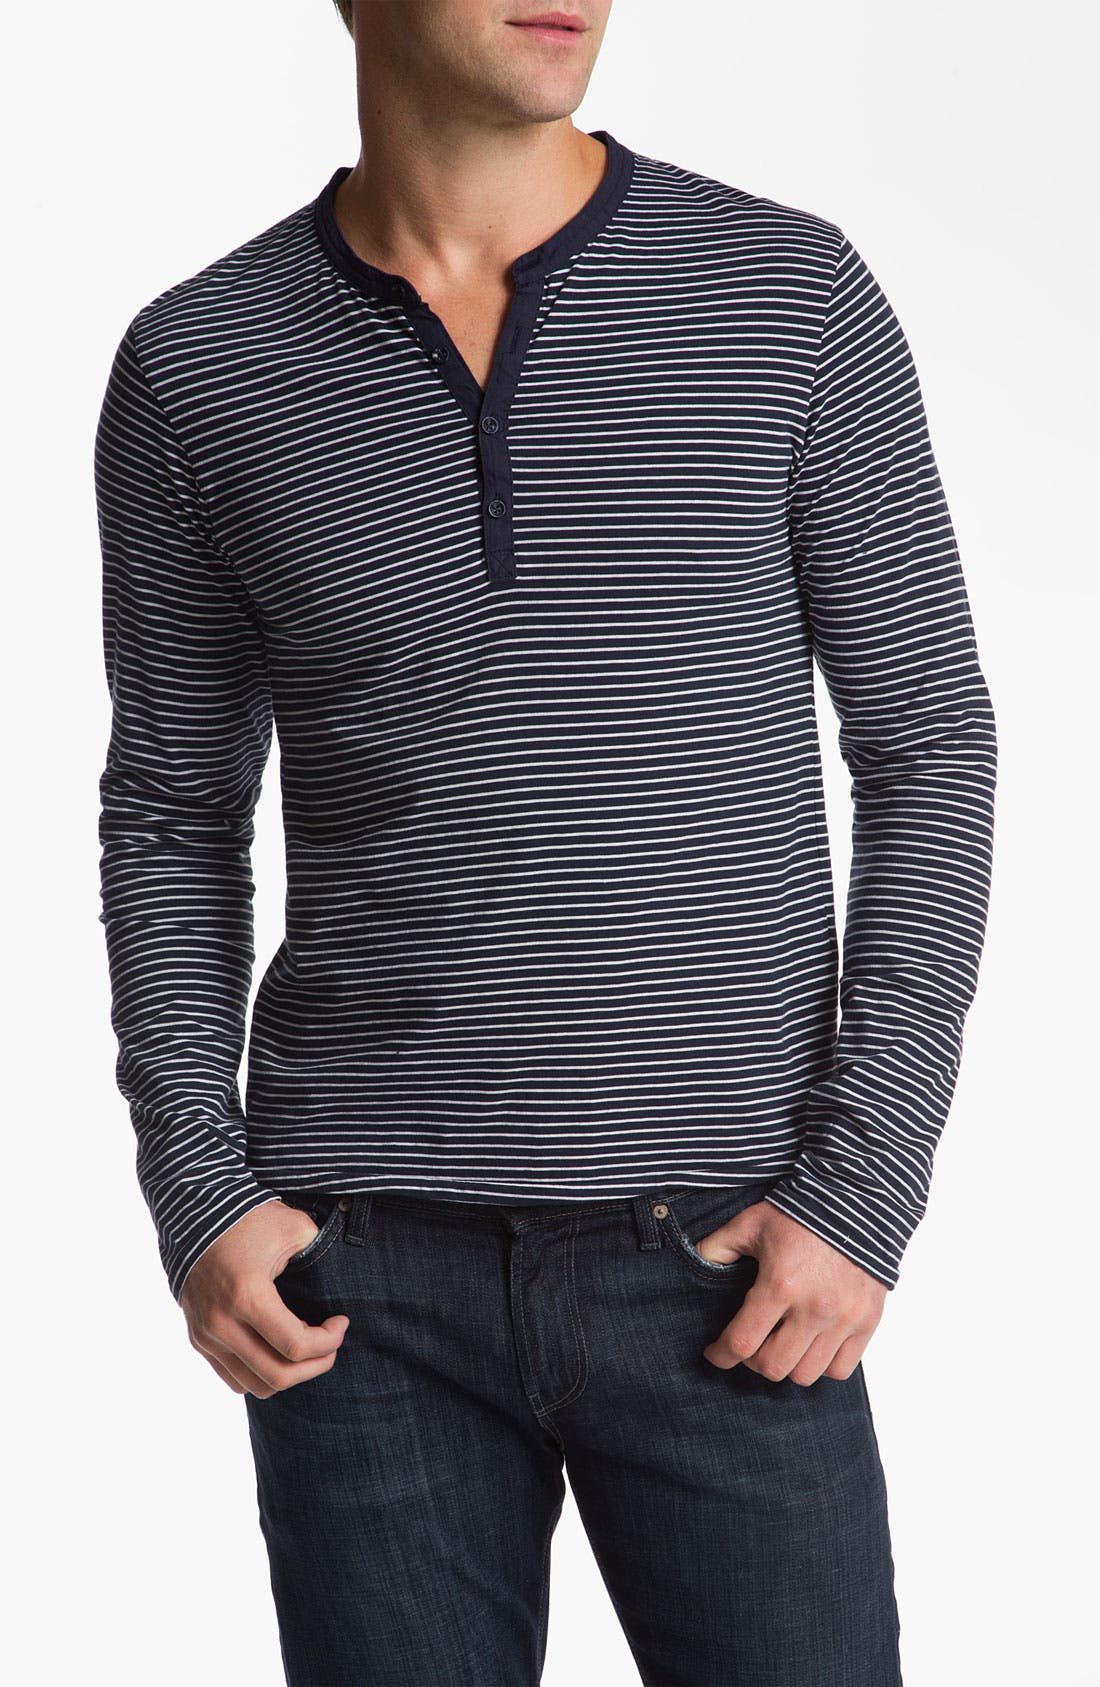 Alternate Image 1 Selected - Scotch & Soda Slub Knit Jersey Henley